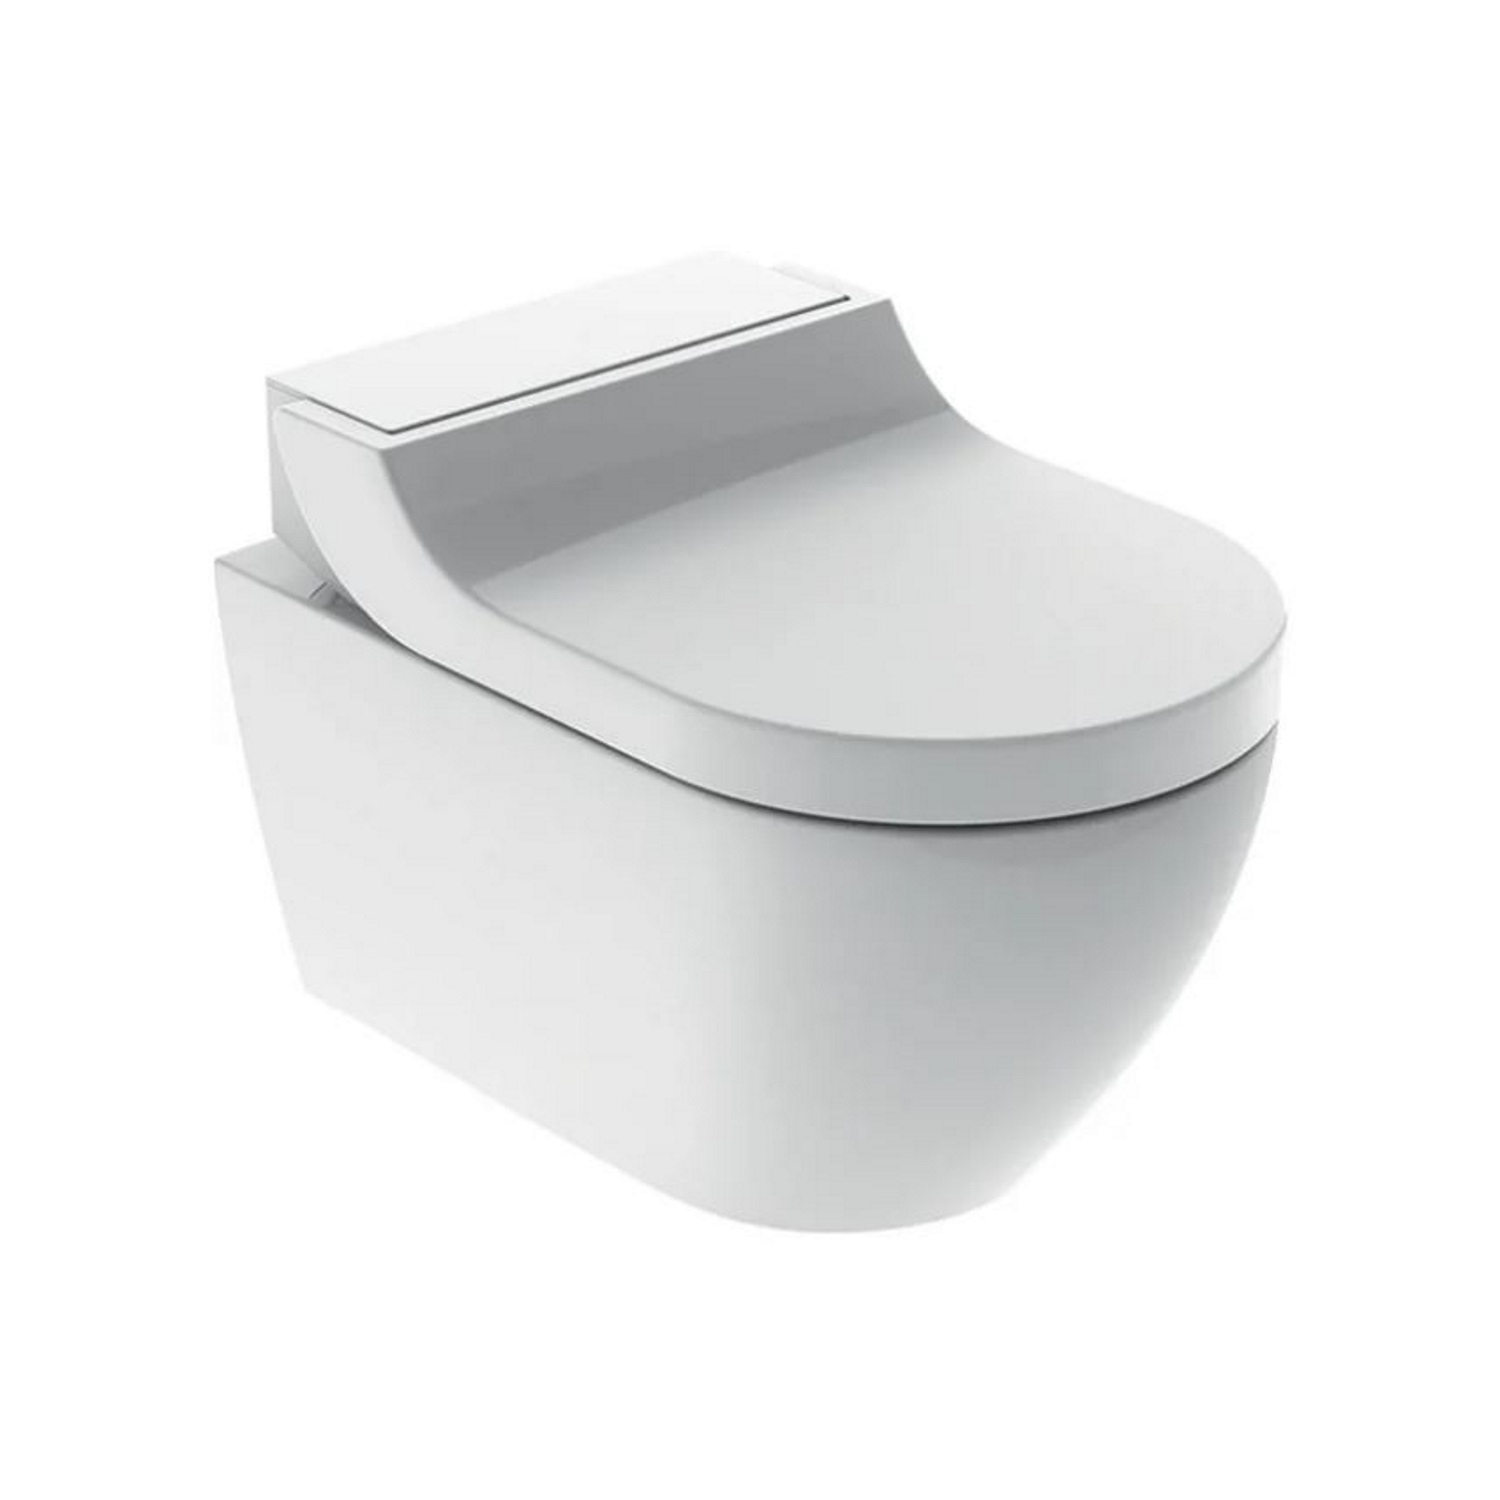 Douche WC reviews ervaringen Douche WC